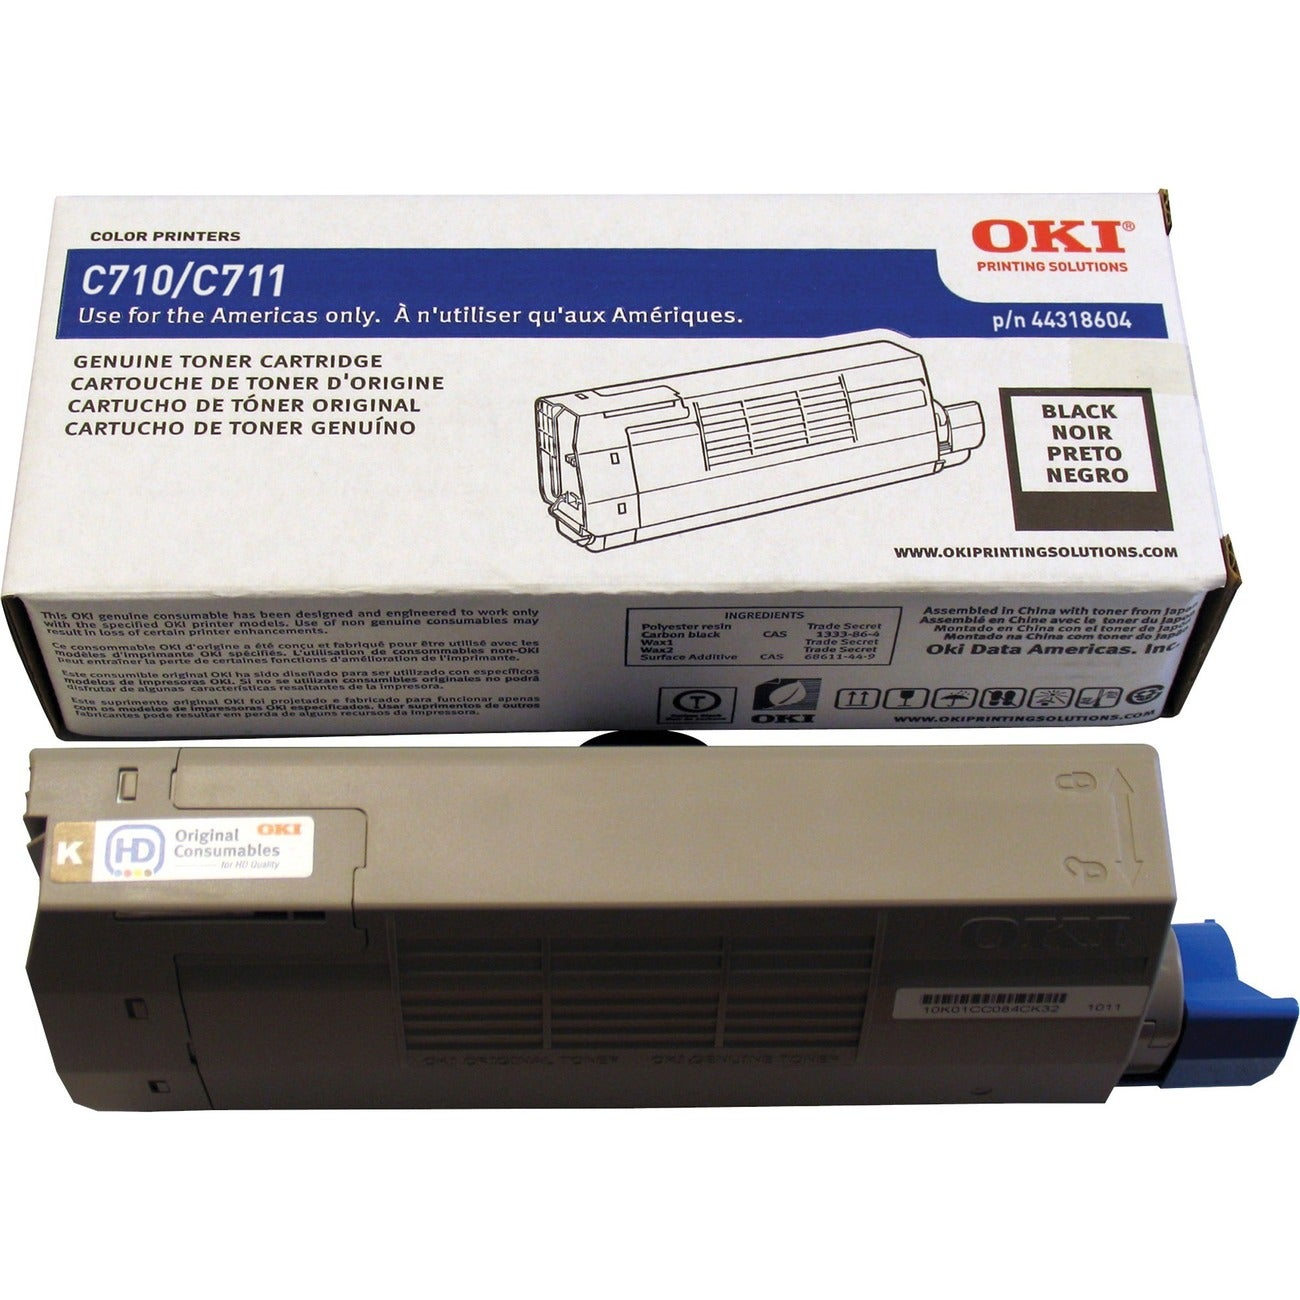 Oki 44318604 Toner Cartridge - Black